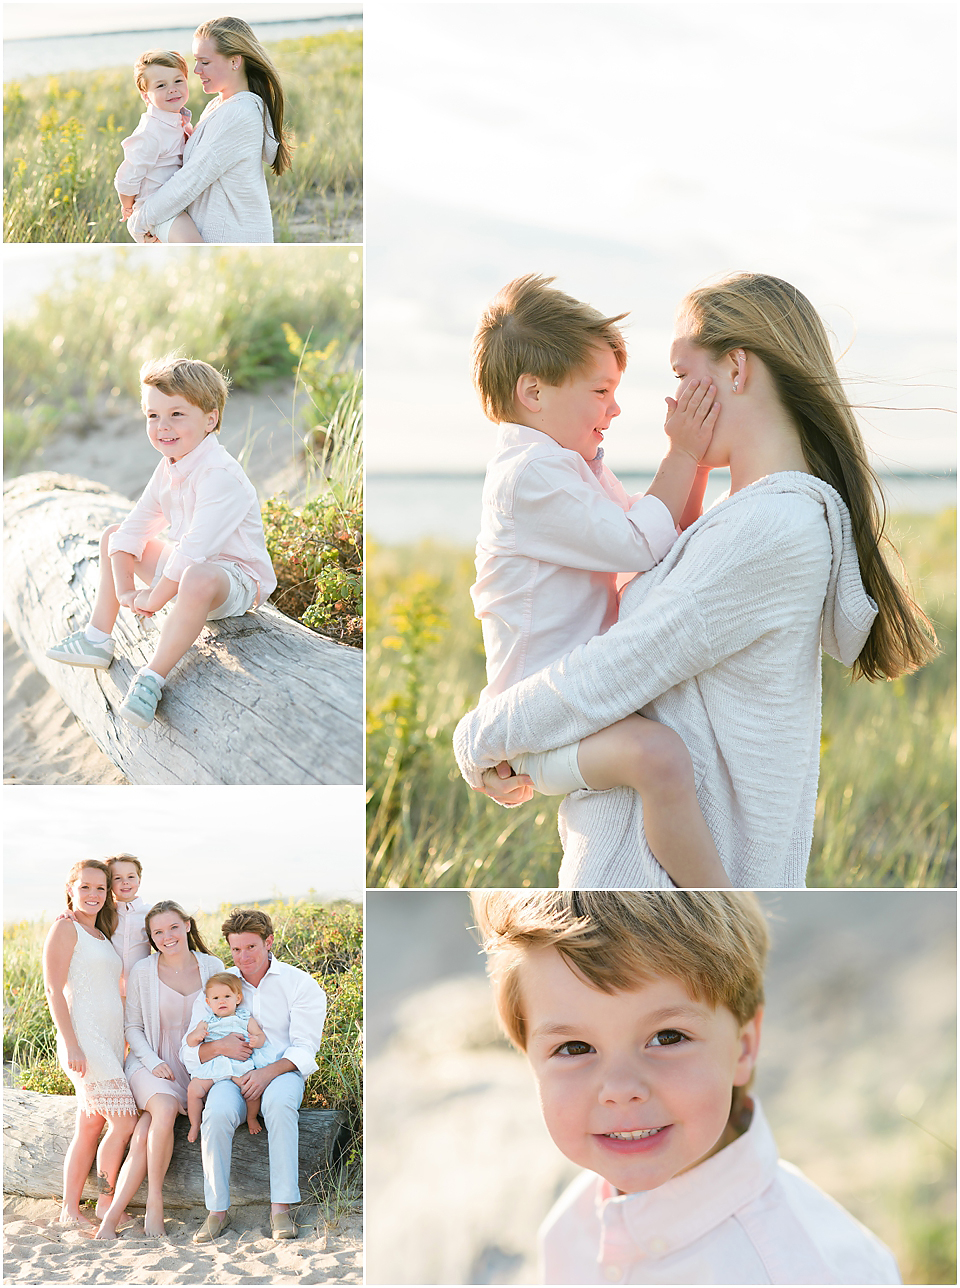 Best Family Photographers in CT | Family Beach Portraits | Family Photographers in CT | Family Beach Session | Connecticut Photographers | www.kellidease.com